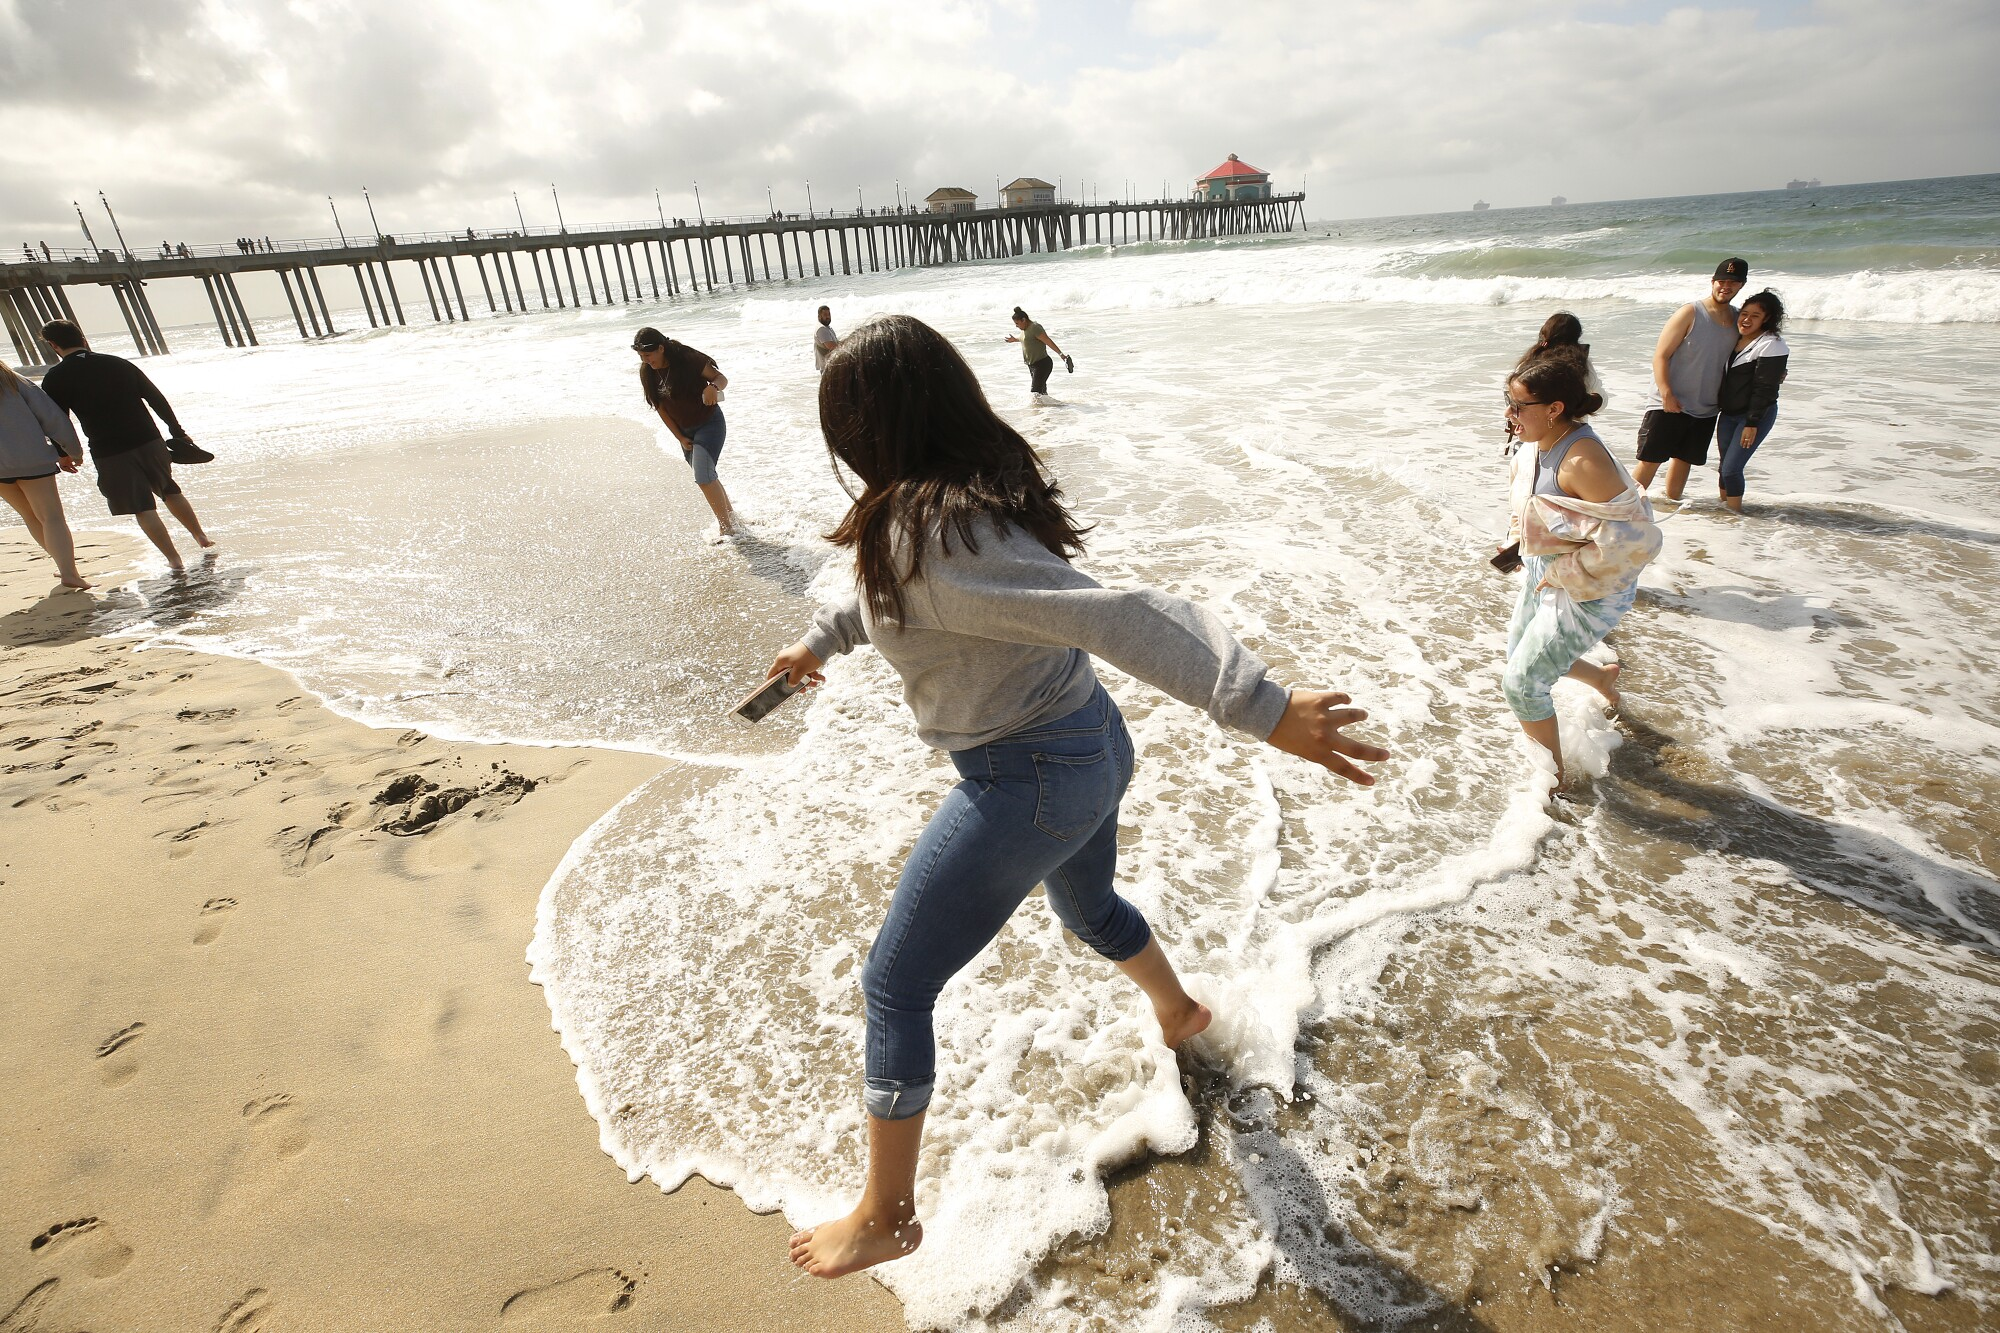 Destiny Corrales, left, and Hania Albarran, right, play in the surf north of the Huntington Beach Pier